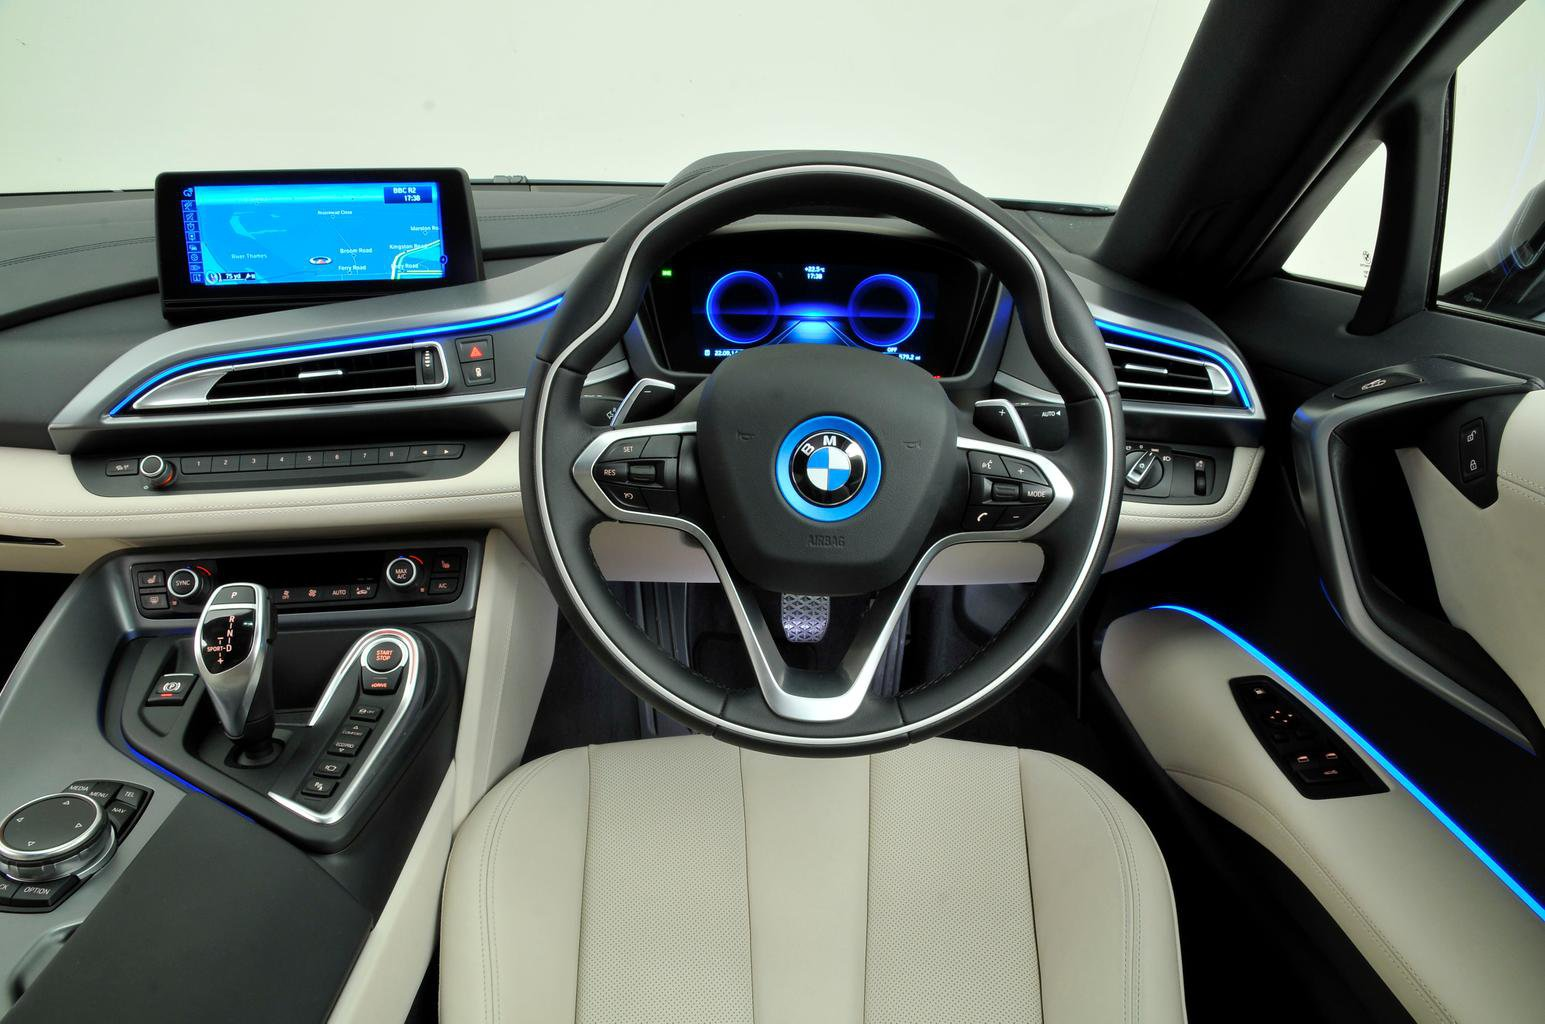 Used BMW i8 Coupe (14-present)